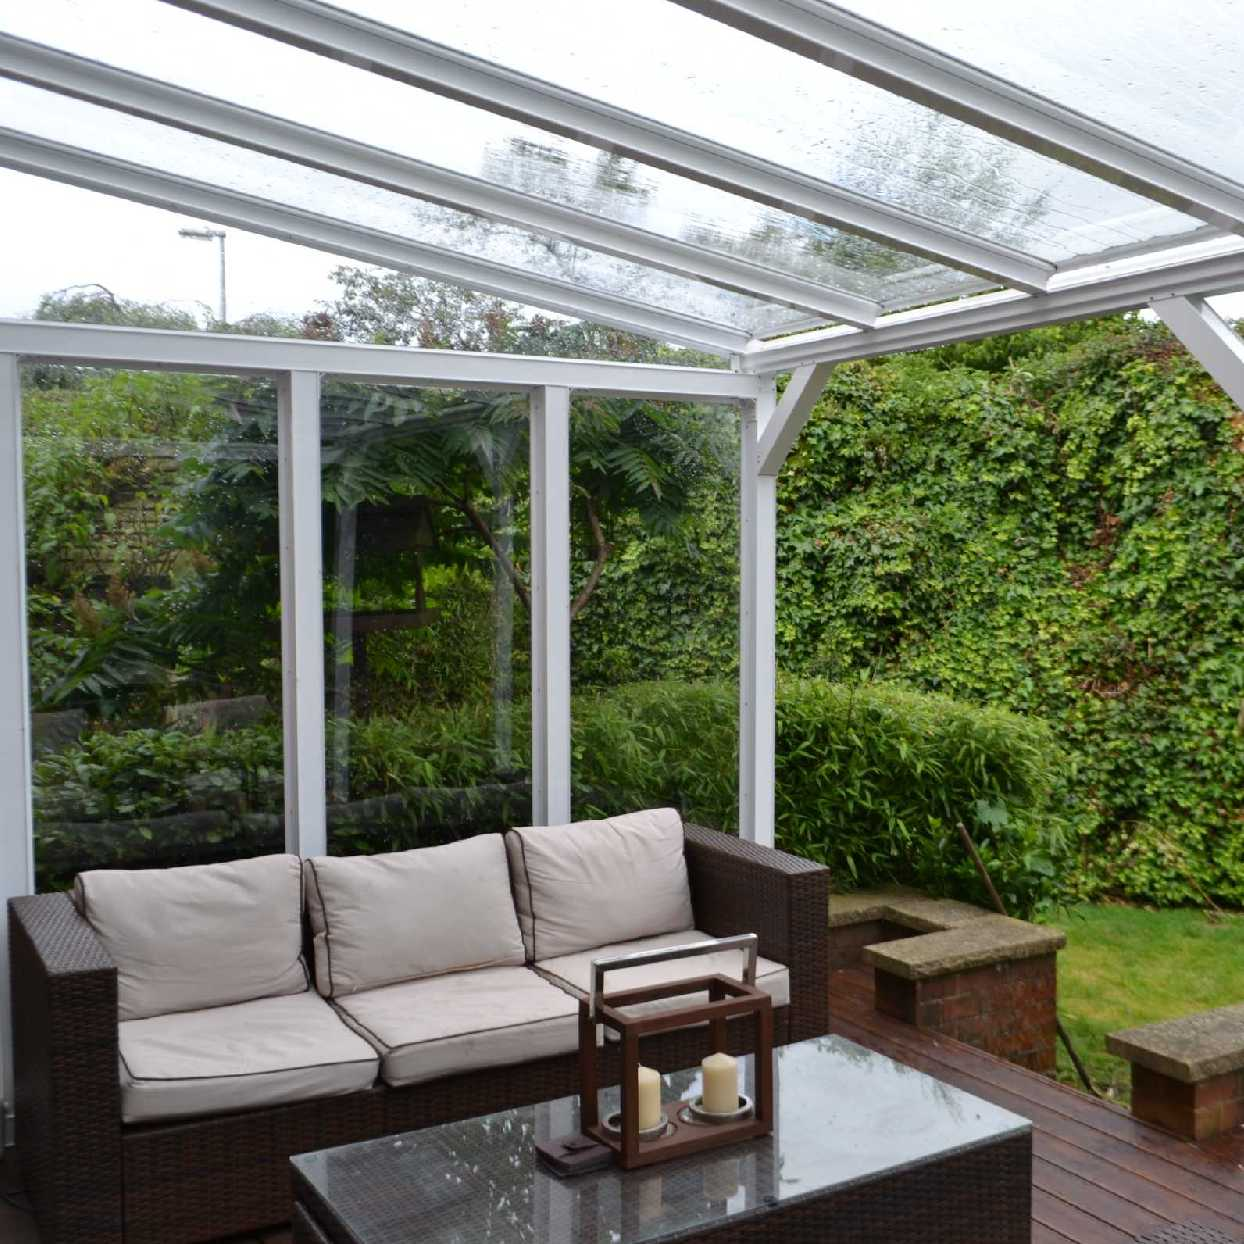 Omega Smart Lean-To Canopy UNGLAZED for 6mm Glazing - 5.2m (W) x 4.0m (P), (3) Supporting Posts